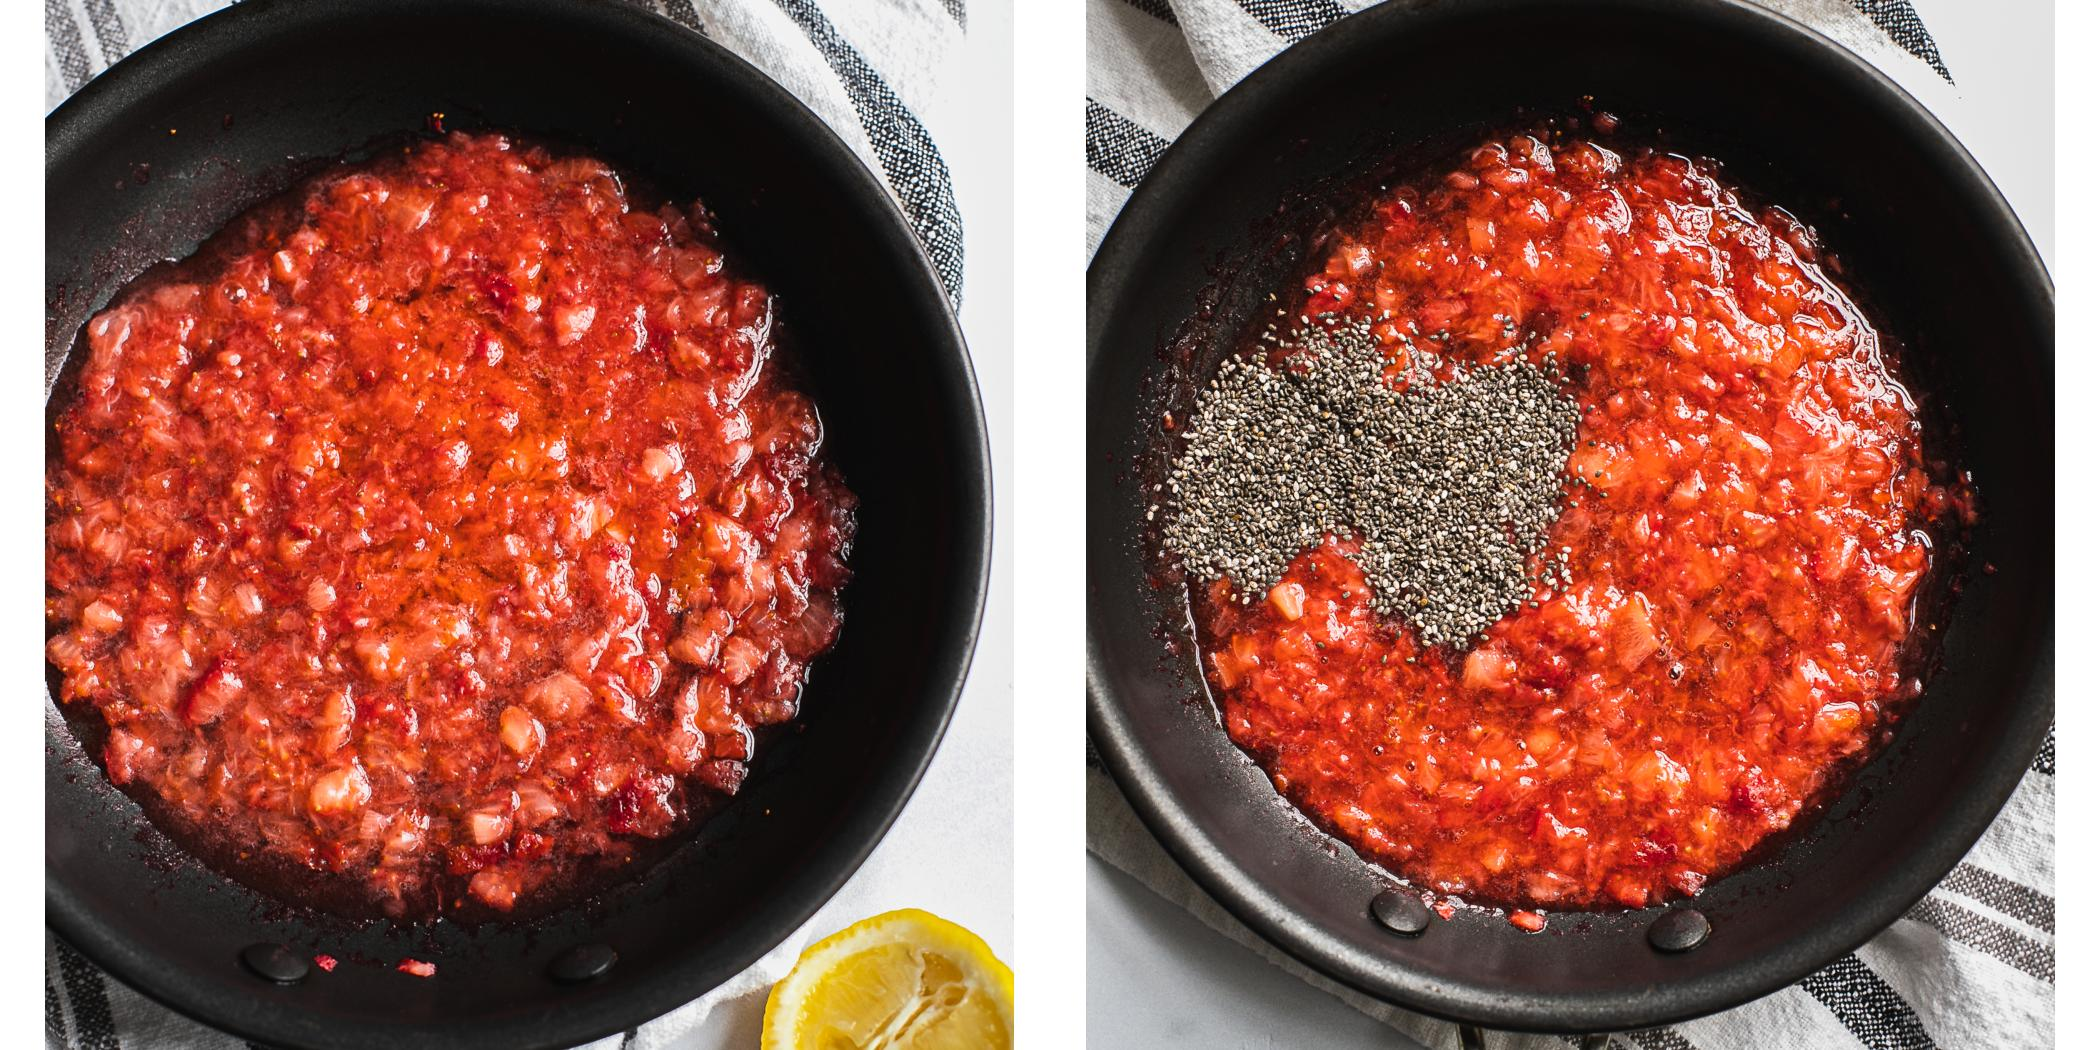 Step by Step instruction on how to make strawberry chia jam.